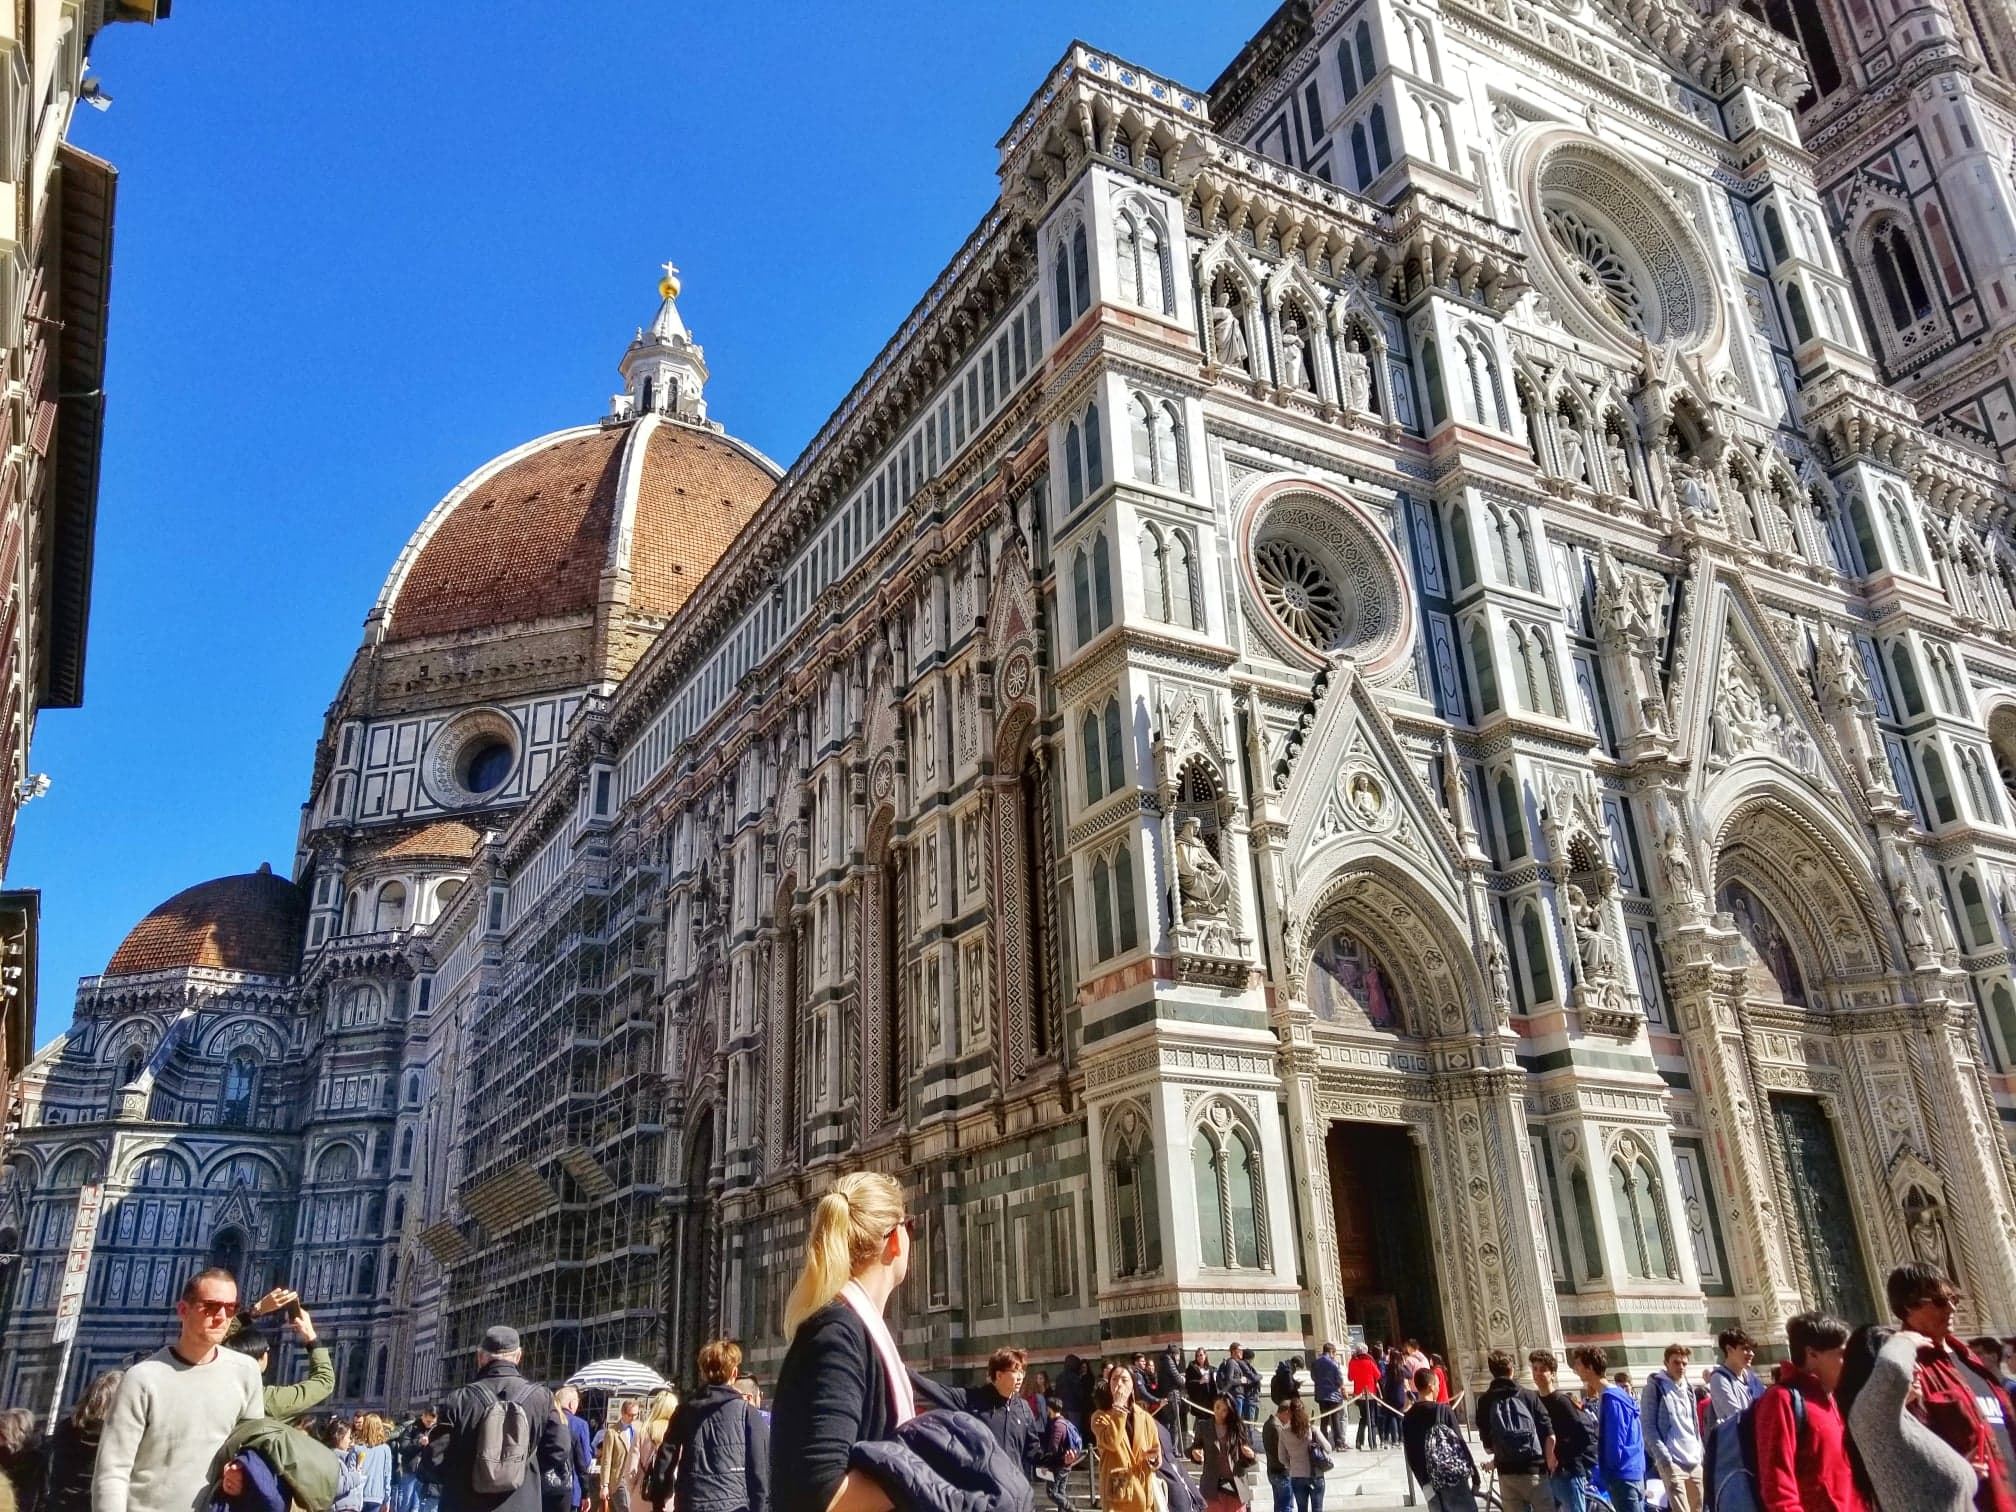 Florence itinerary 2 days - Piazza del Duomo